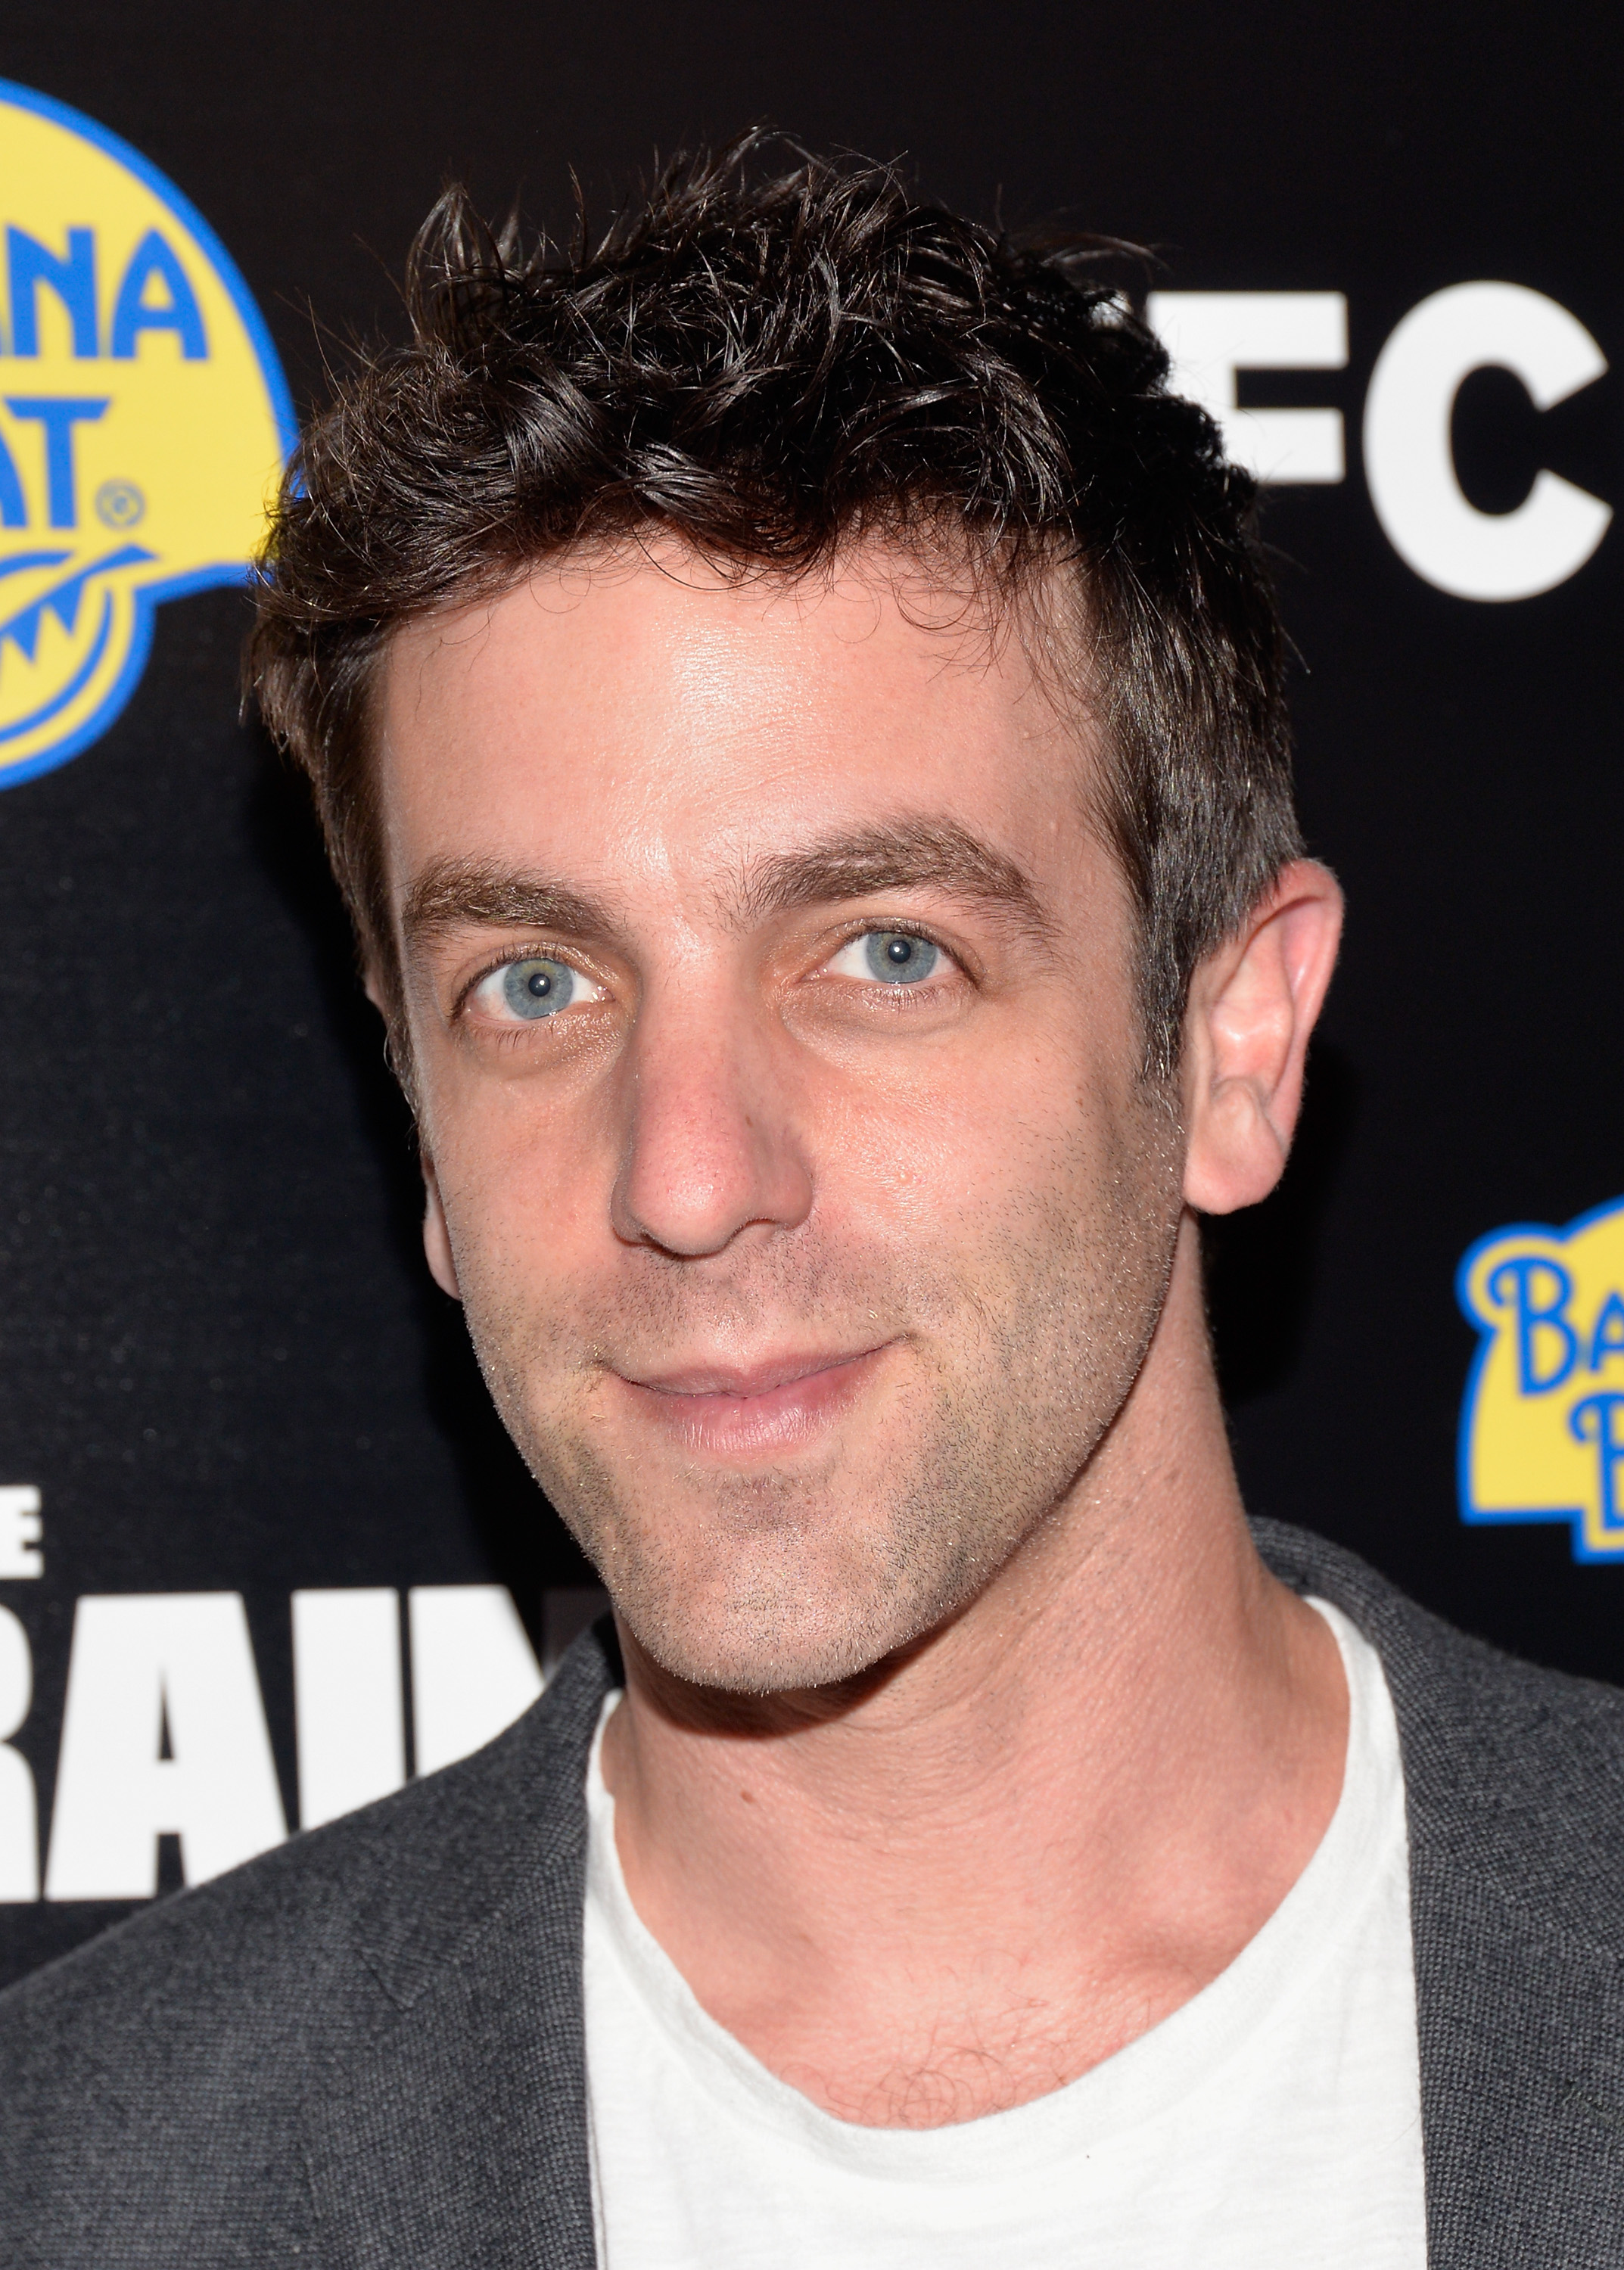 Actor B.J. Novak attends the premiere of IFC Films'  The D Train  at ArcLight Hollywood on April 27, 2015 in Hollywood, California.